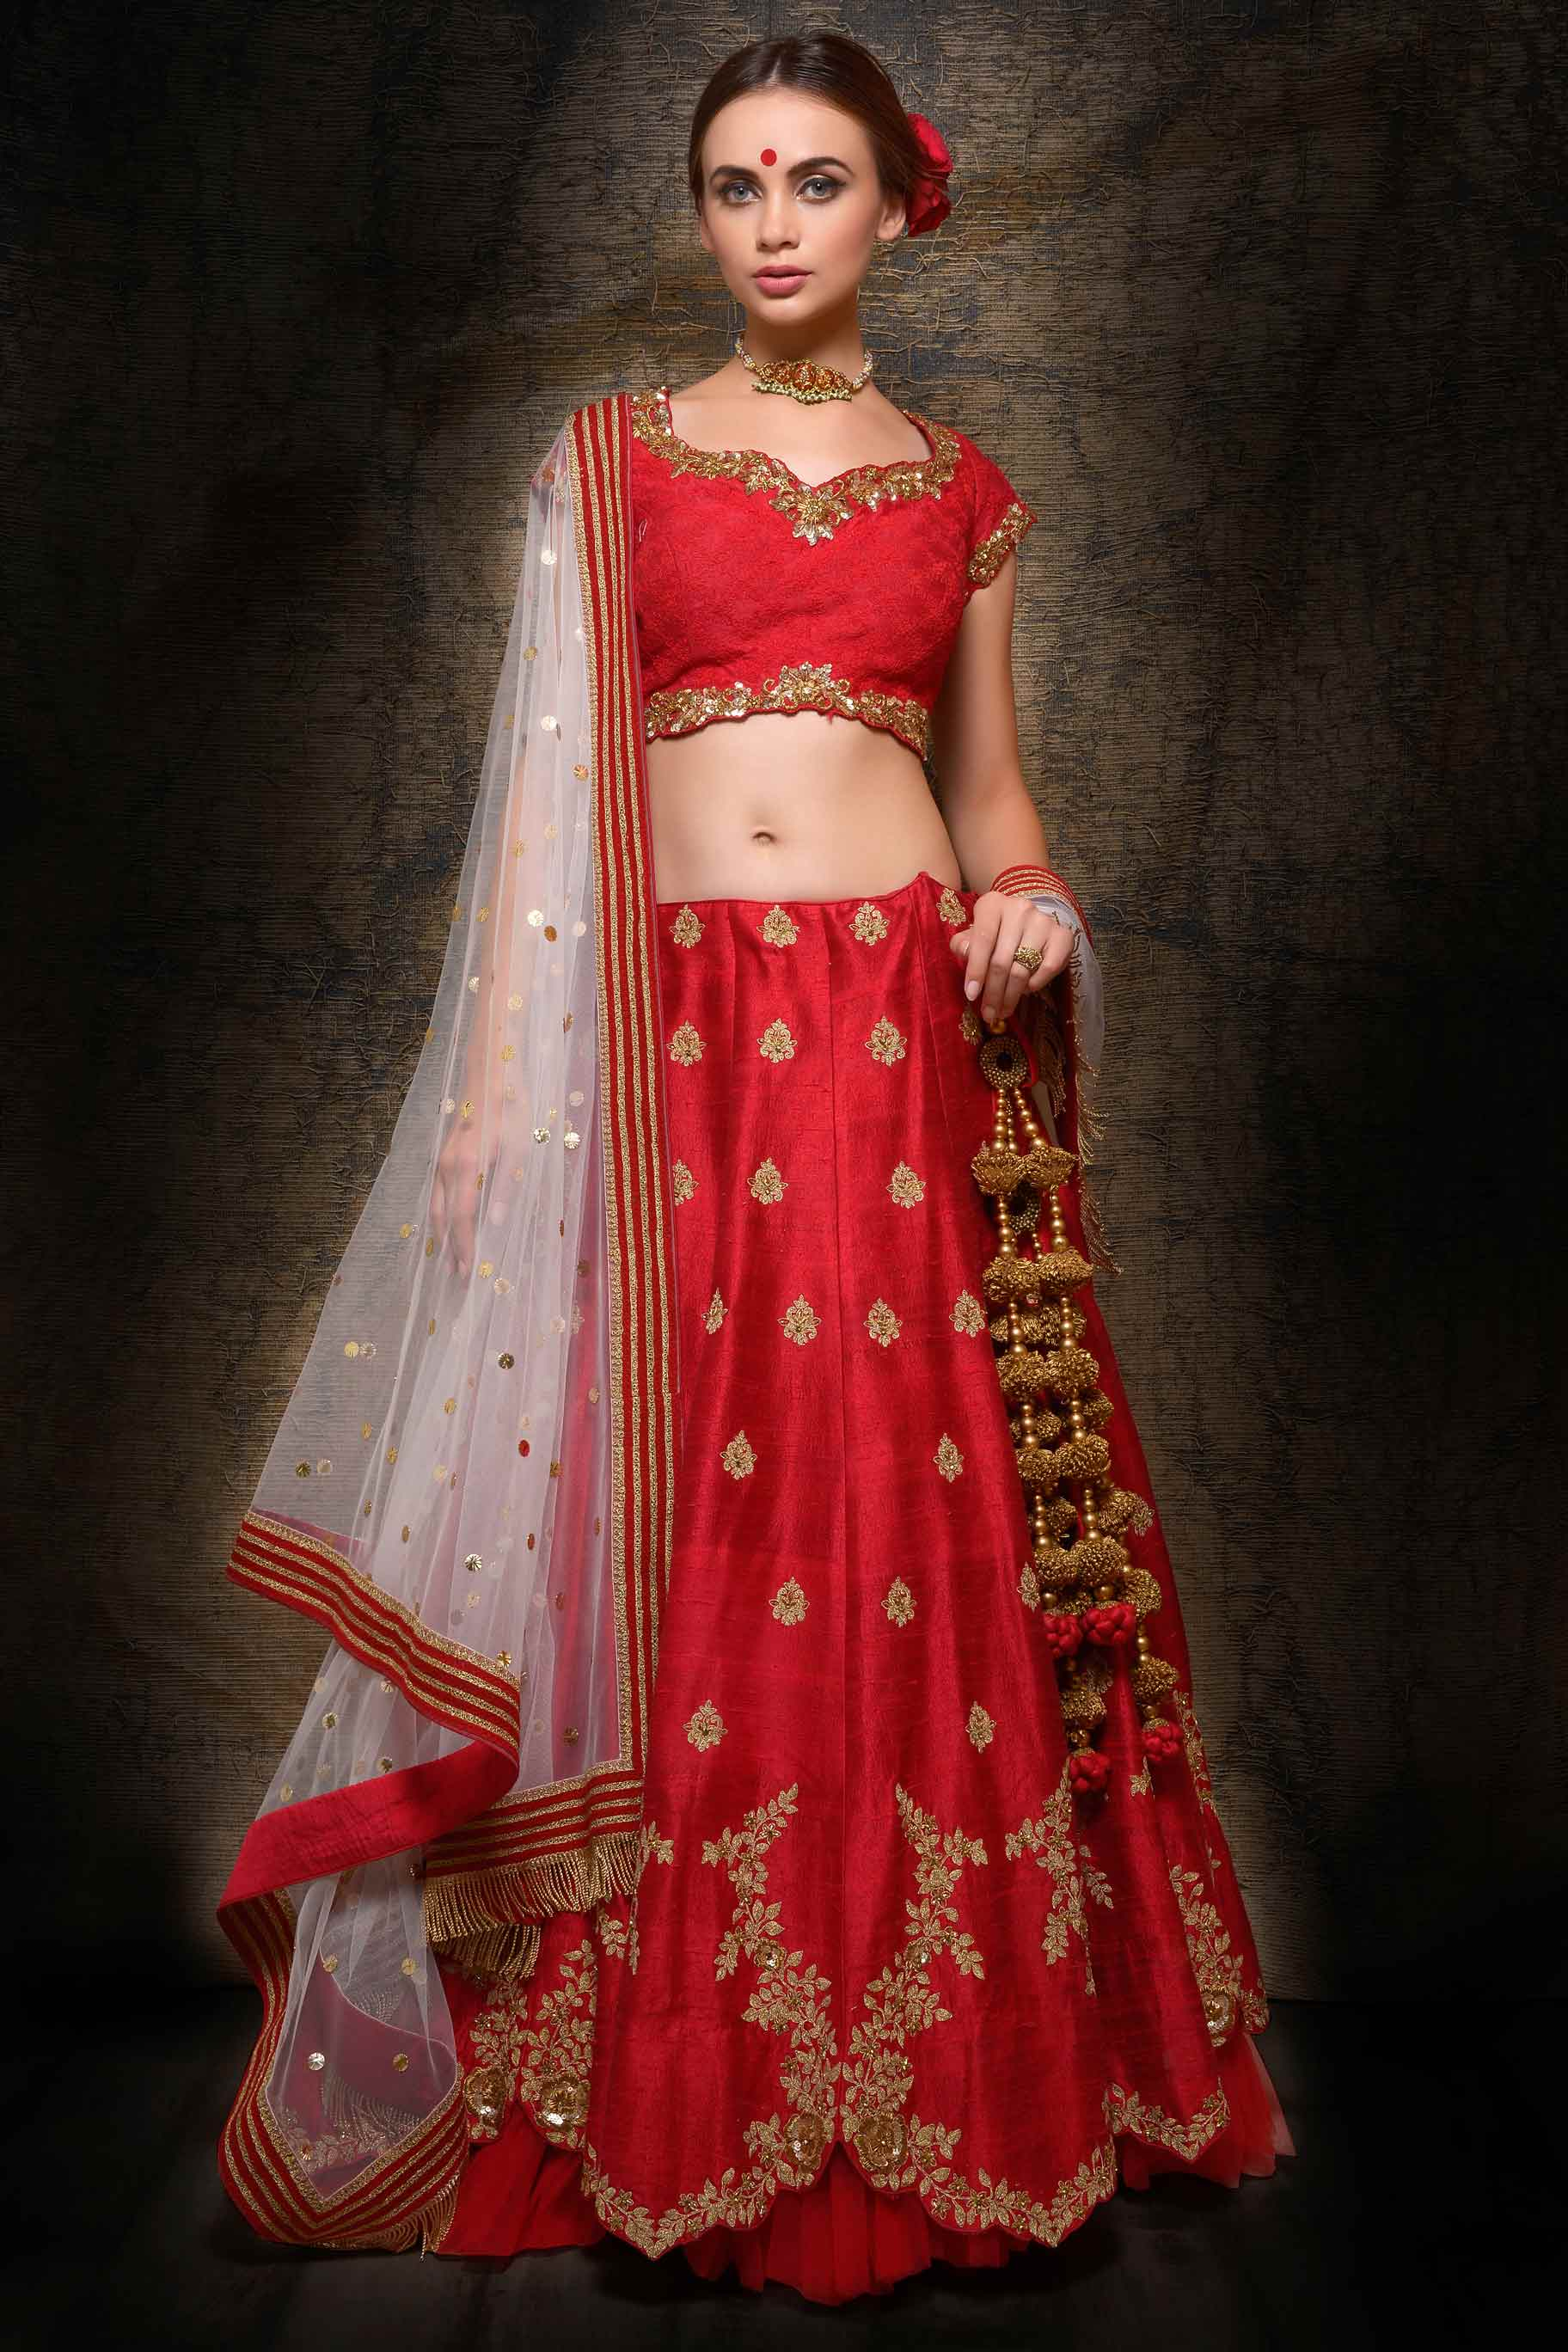 Buy rose red raw silk embroidered lehenga with dupatta online in USA. Make your wedding trousseau complete with exquisite Indian designer wedding lehengas from Pure Elegance Indian clothing store for women in USA or shop online.-full view